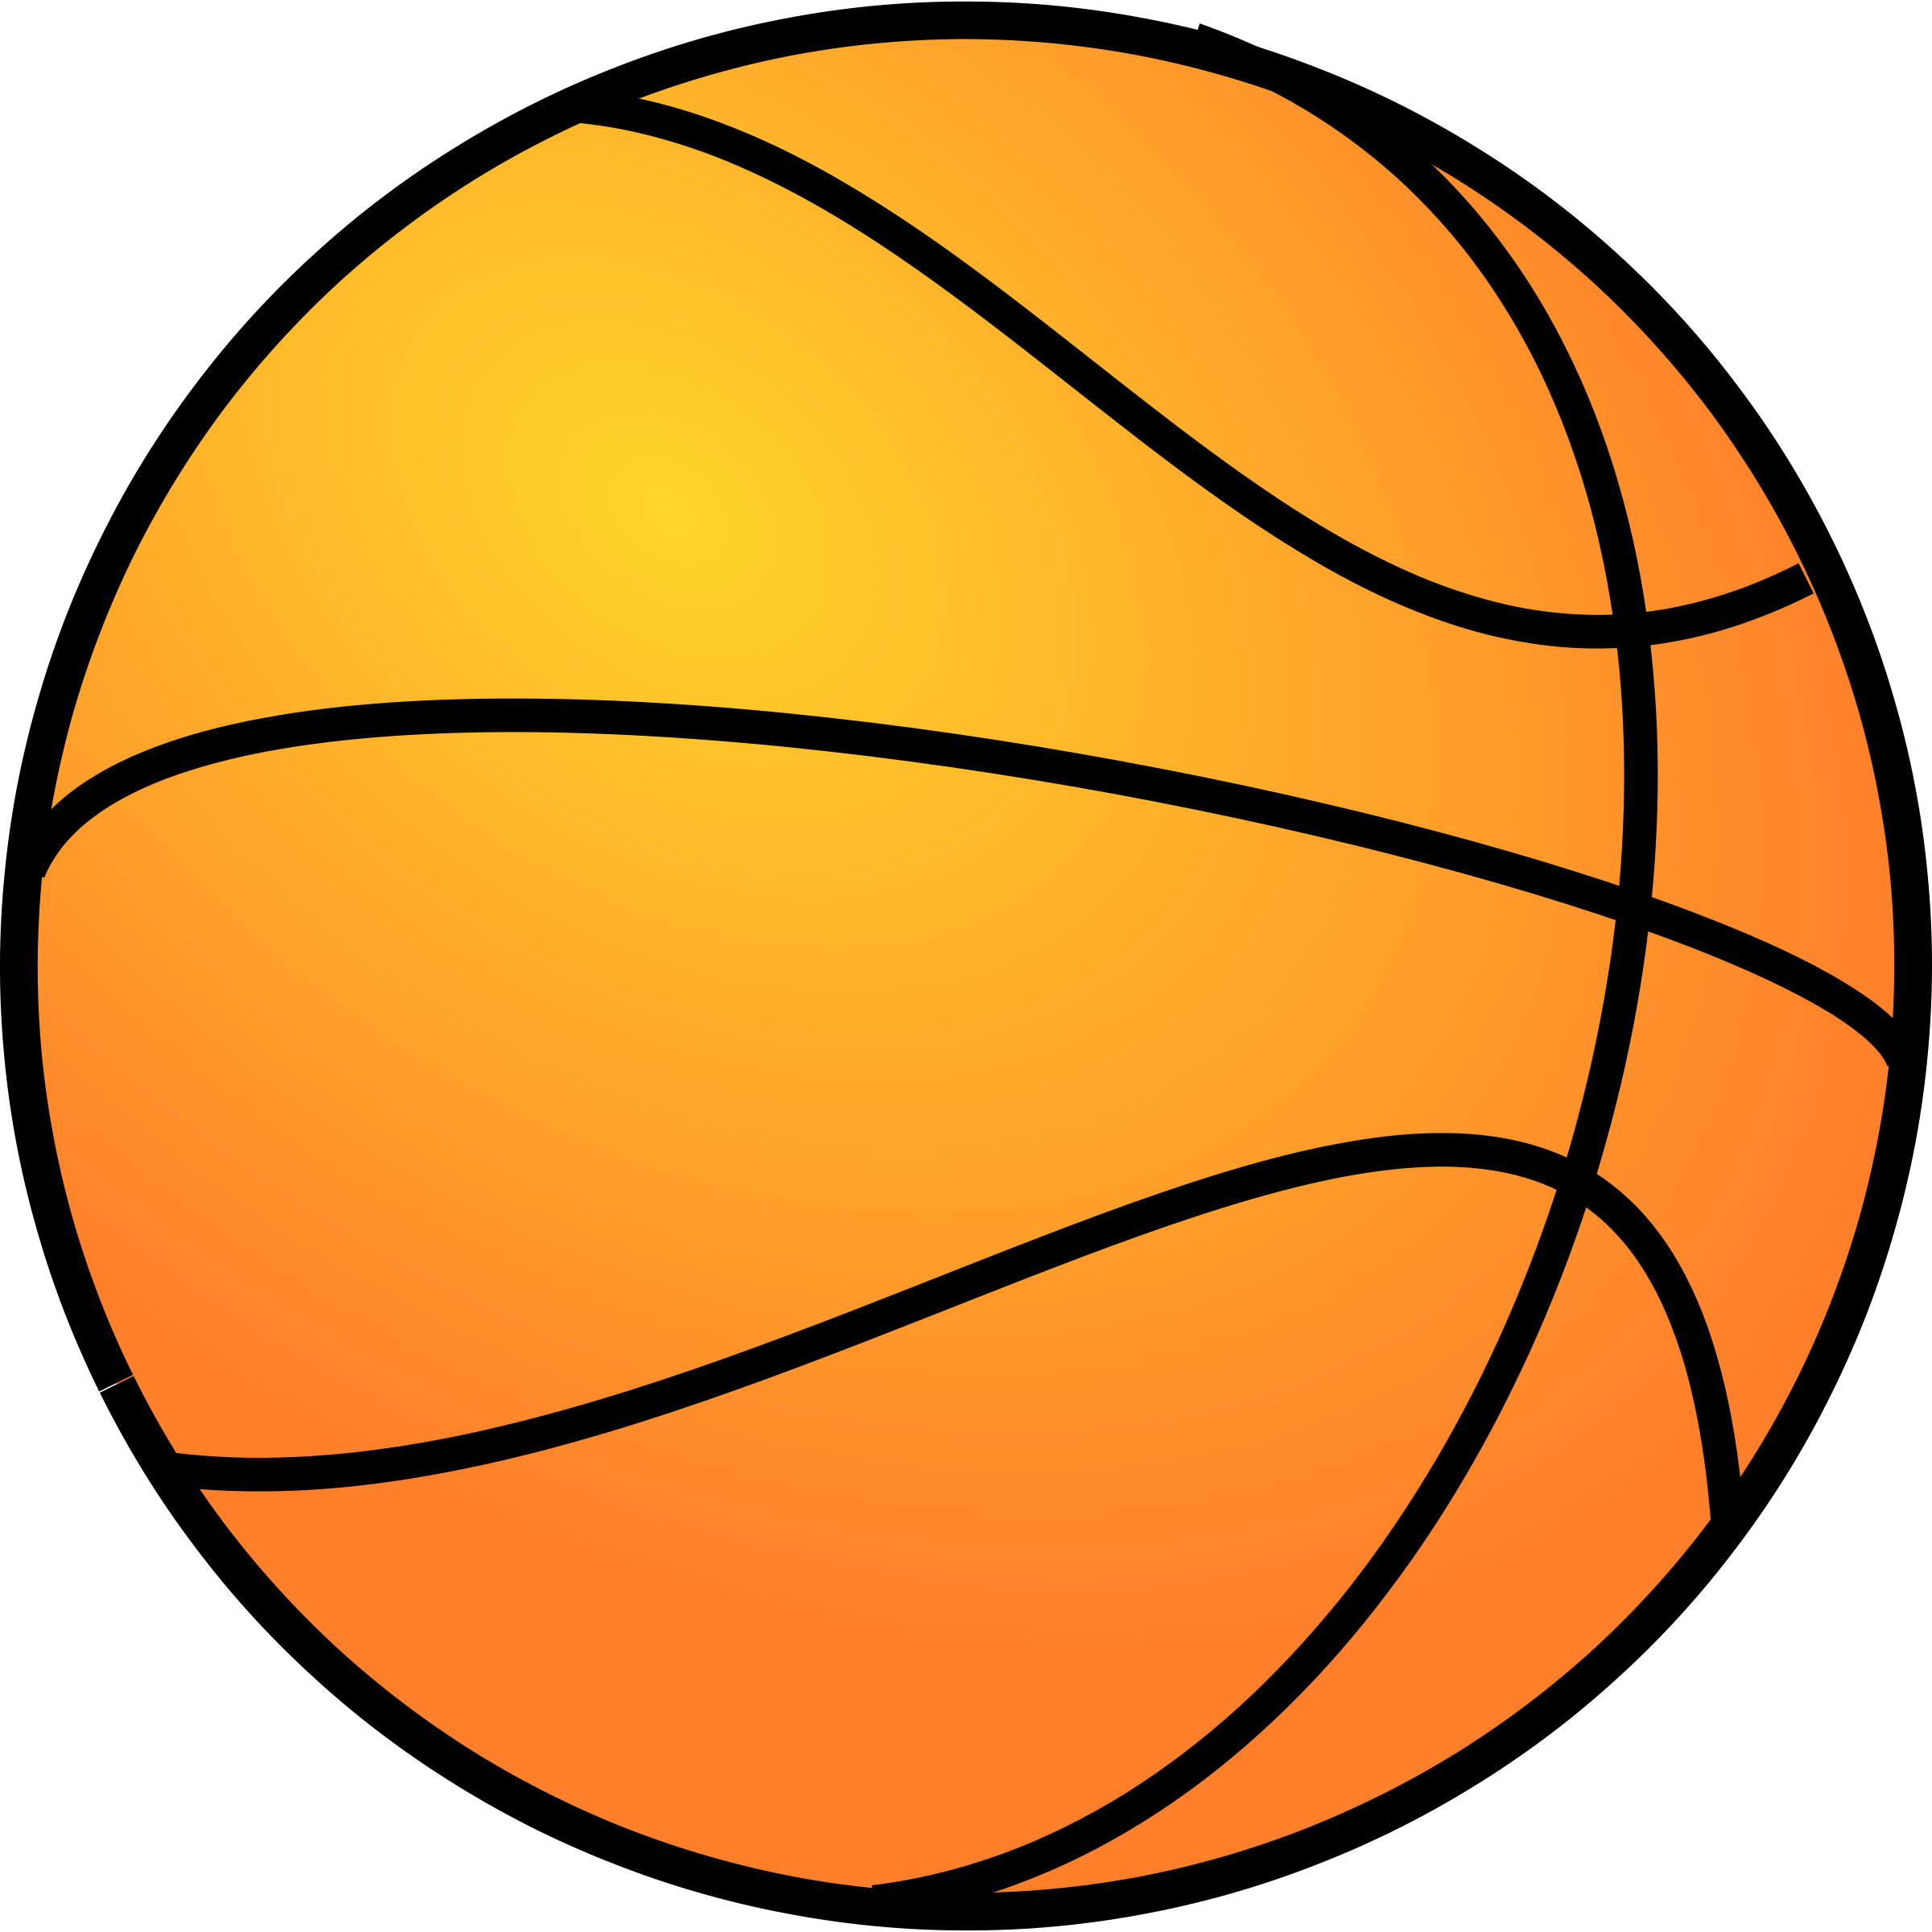 Basketball crossover clipart banner free library Writers' Moves (and how they move writers) | English Teachin' Vegan banner free library